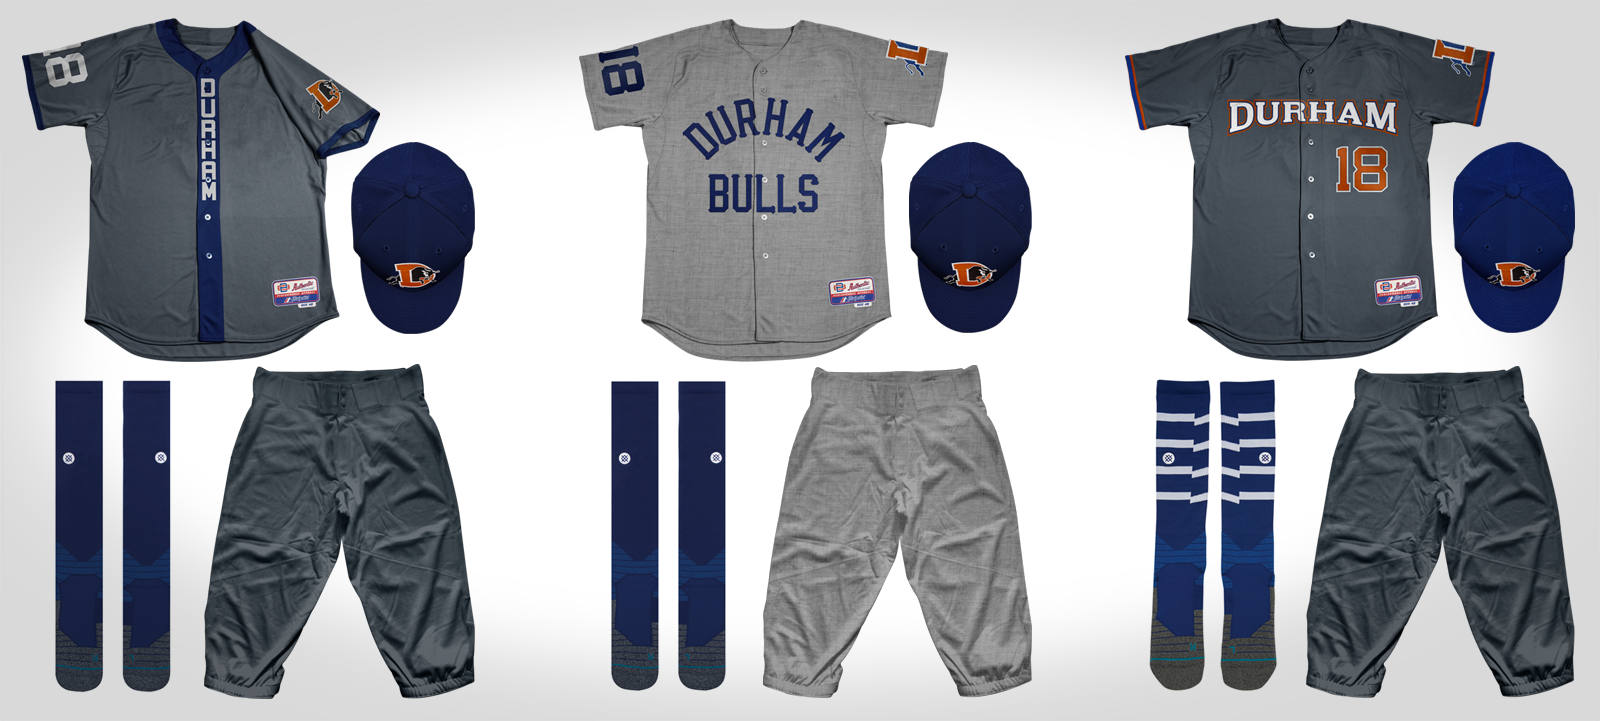 Durham Bulls Triple A Minor League Baseball MiLB Tampa Bay Rays